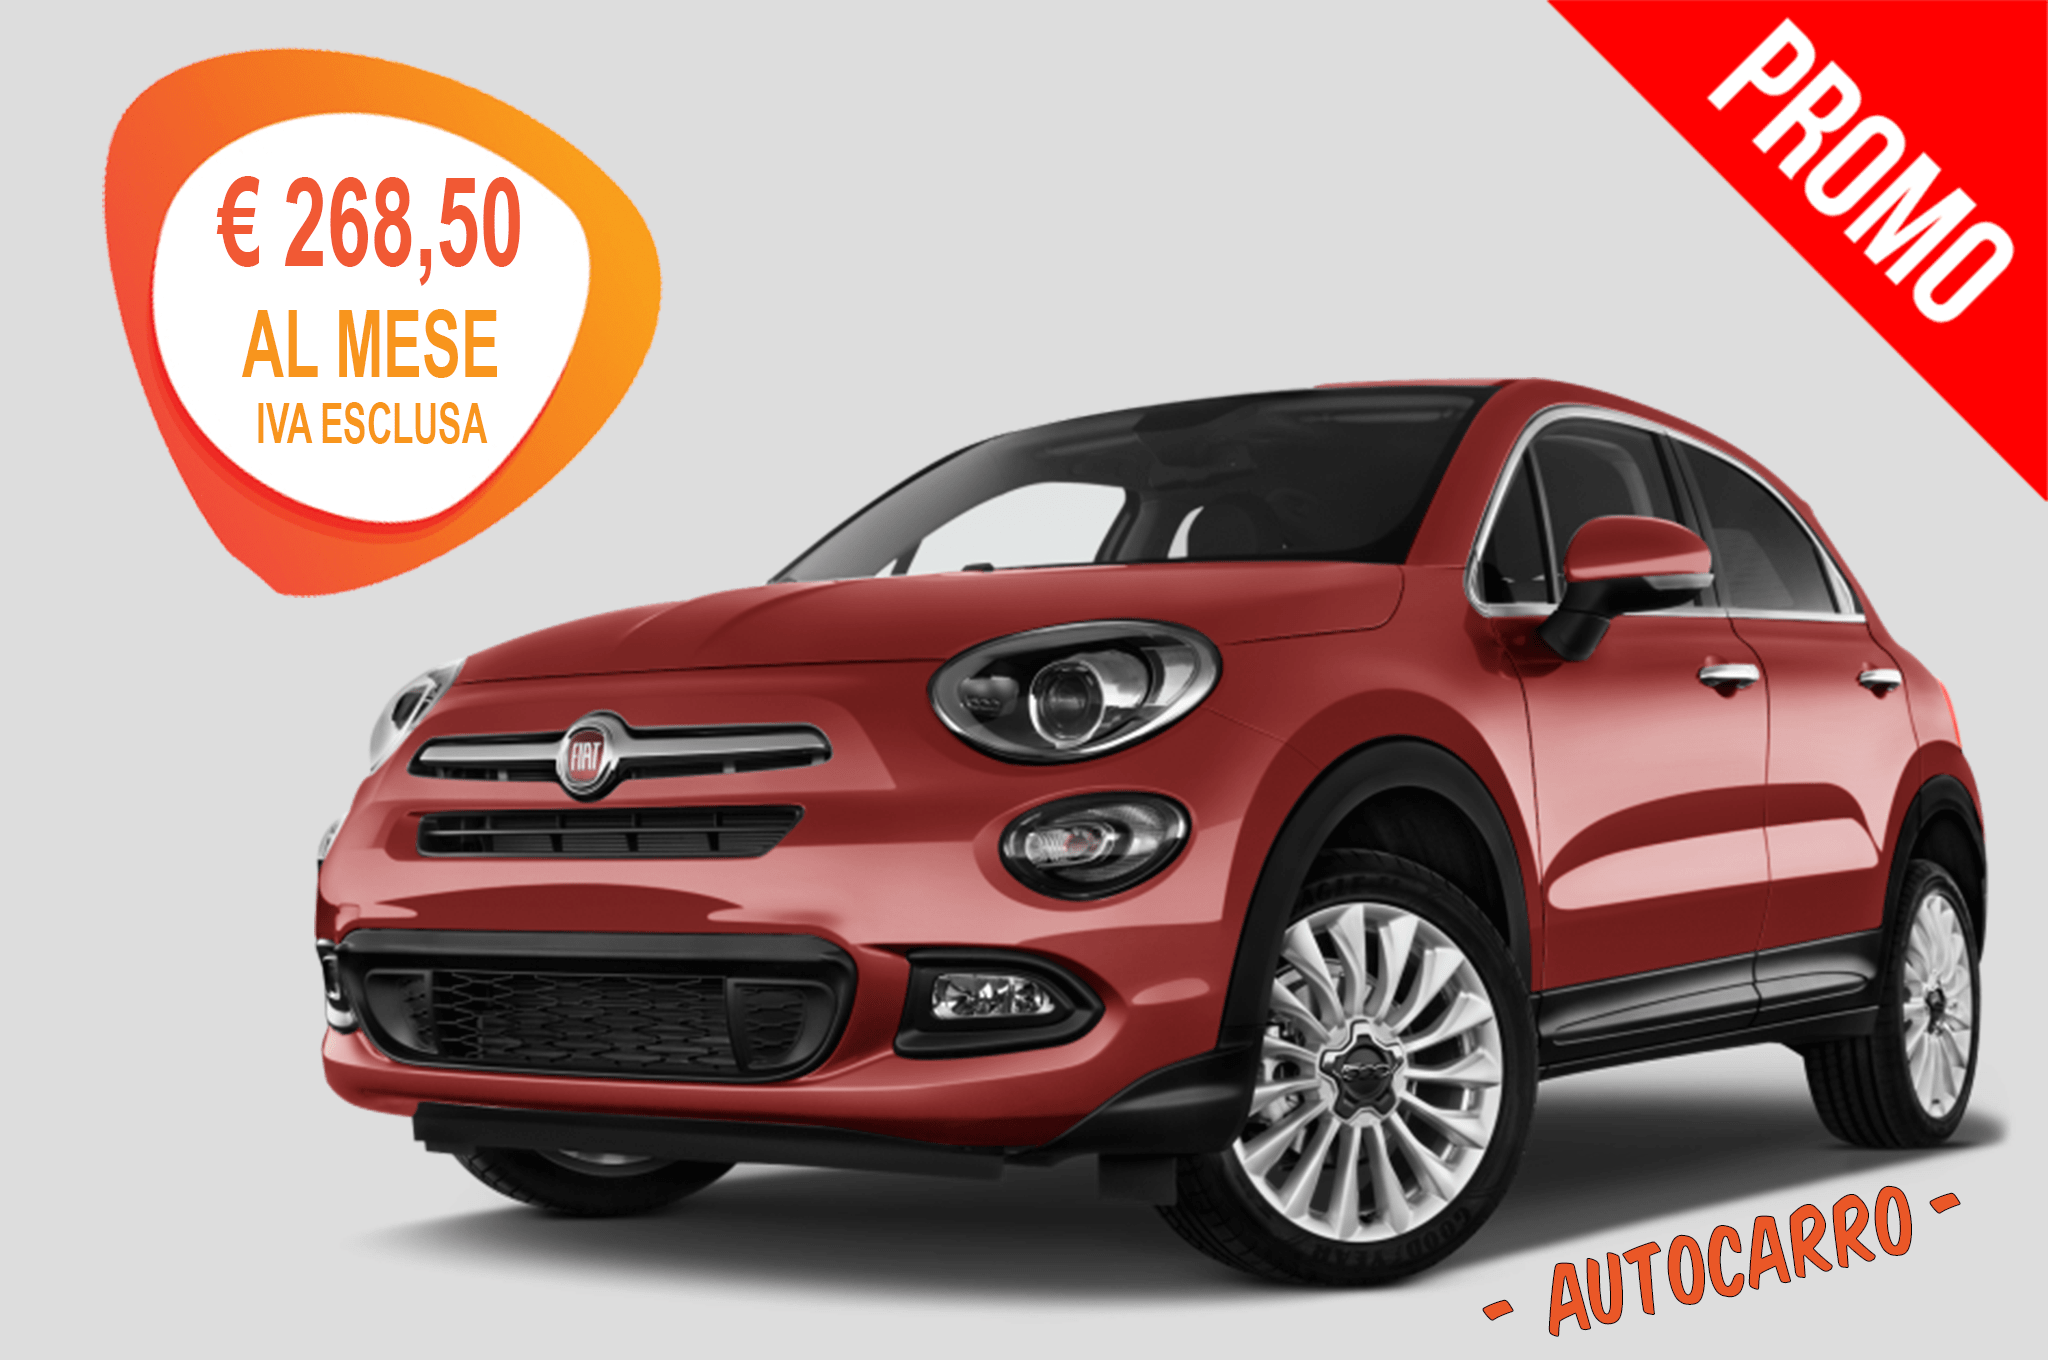 FIAT 500X N1 1.3 Mjet 95cv 4x2 Business